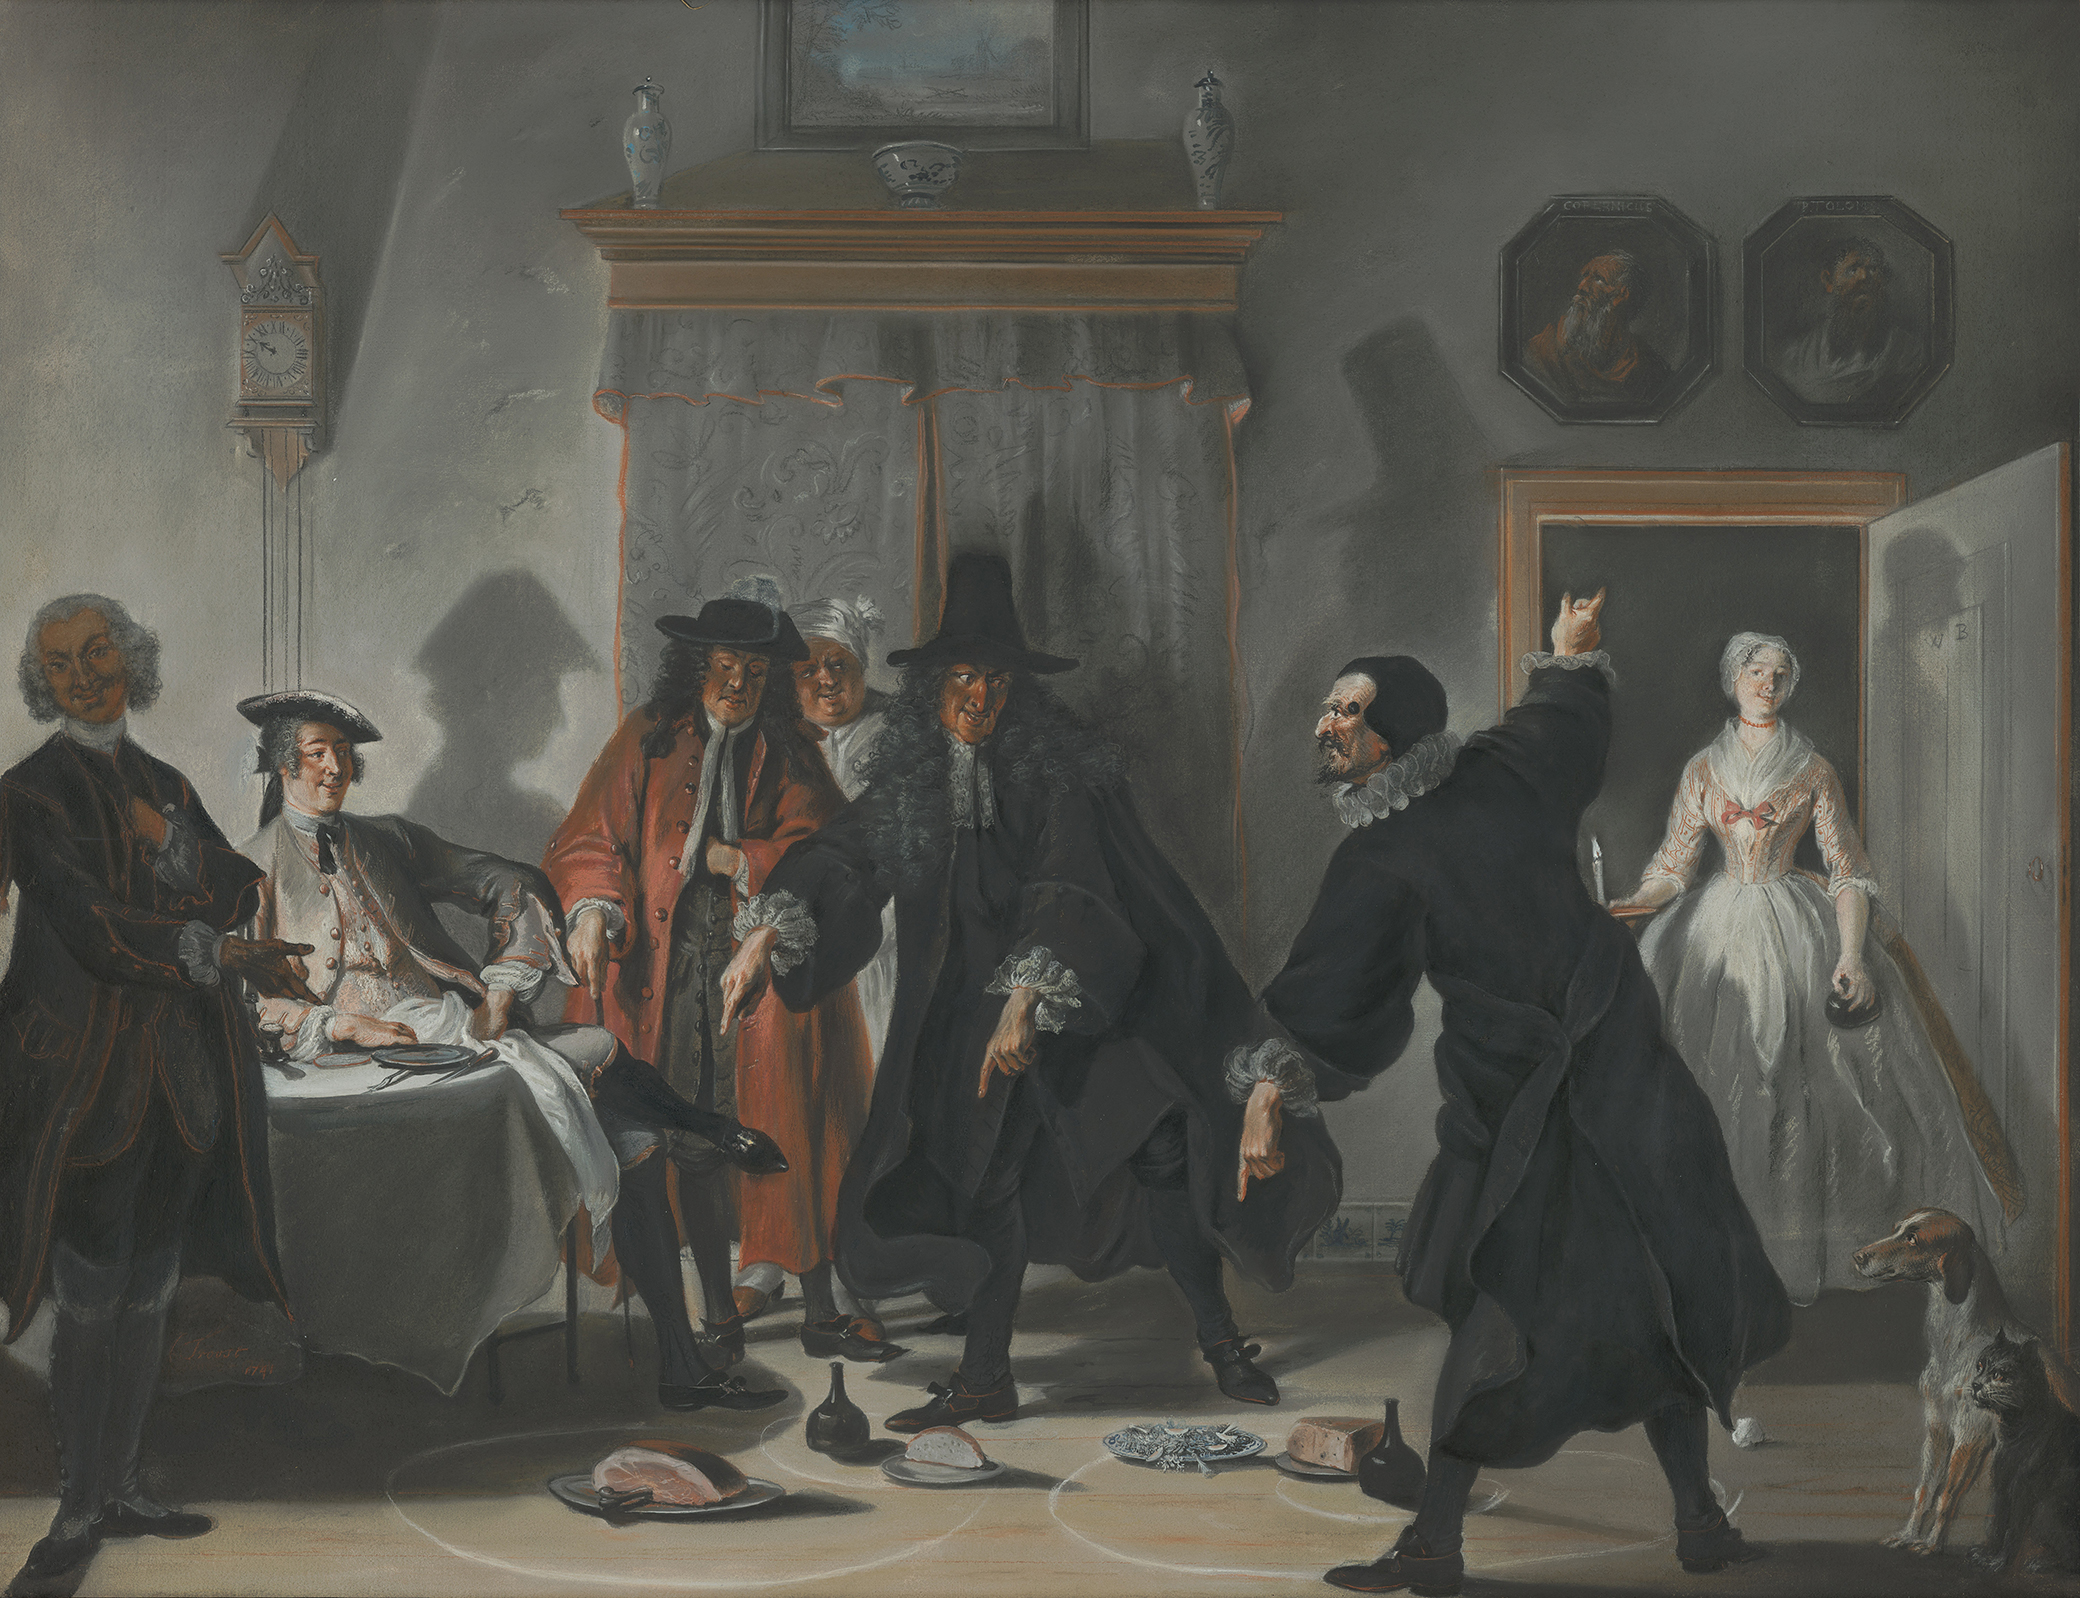 The Mathematicians or the Young Lady Who Fled: The Dispute Between Doctors Raasbollius and Urinaal, painting by Cornelis Troost, 1741. Mauritshuis, The Hague.